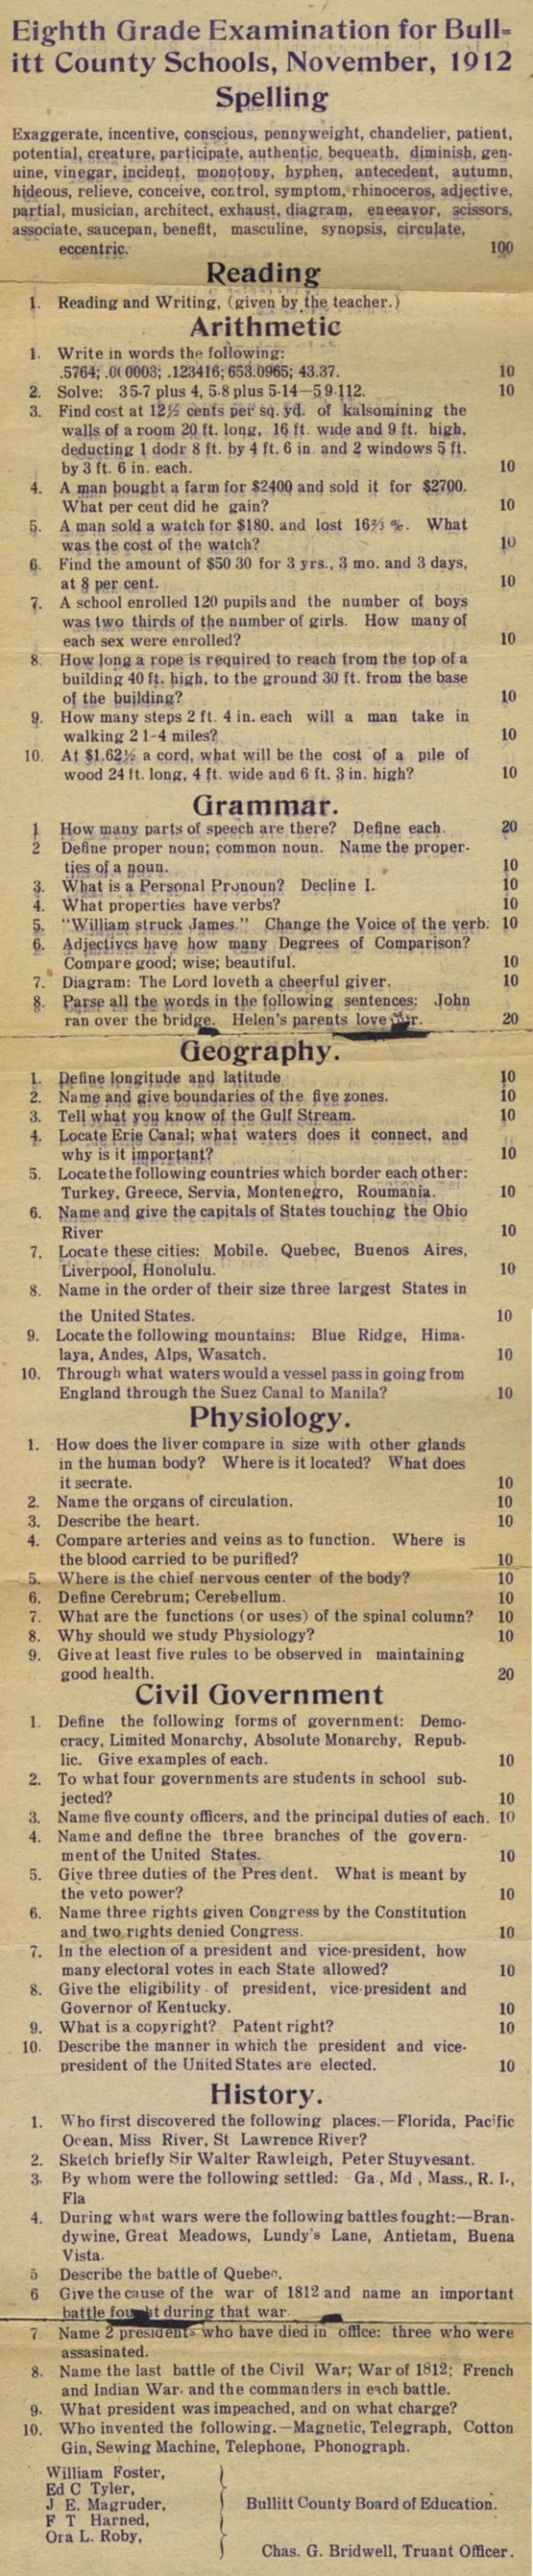 test for the eighth grade in 1912